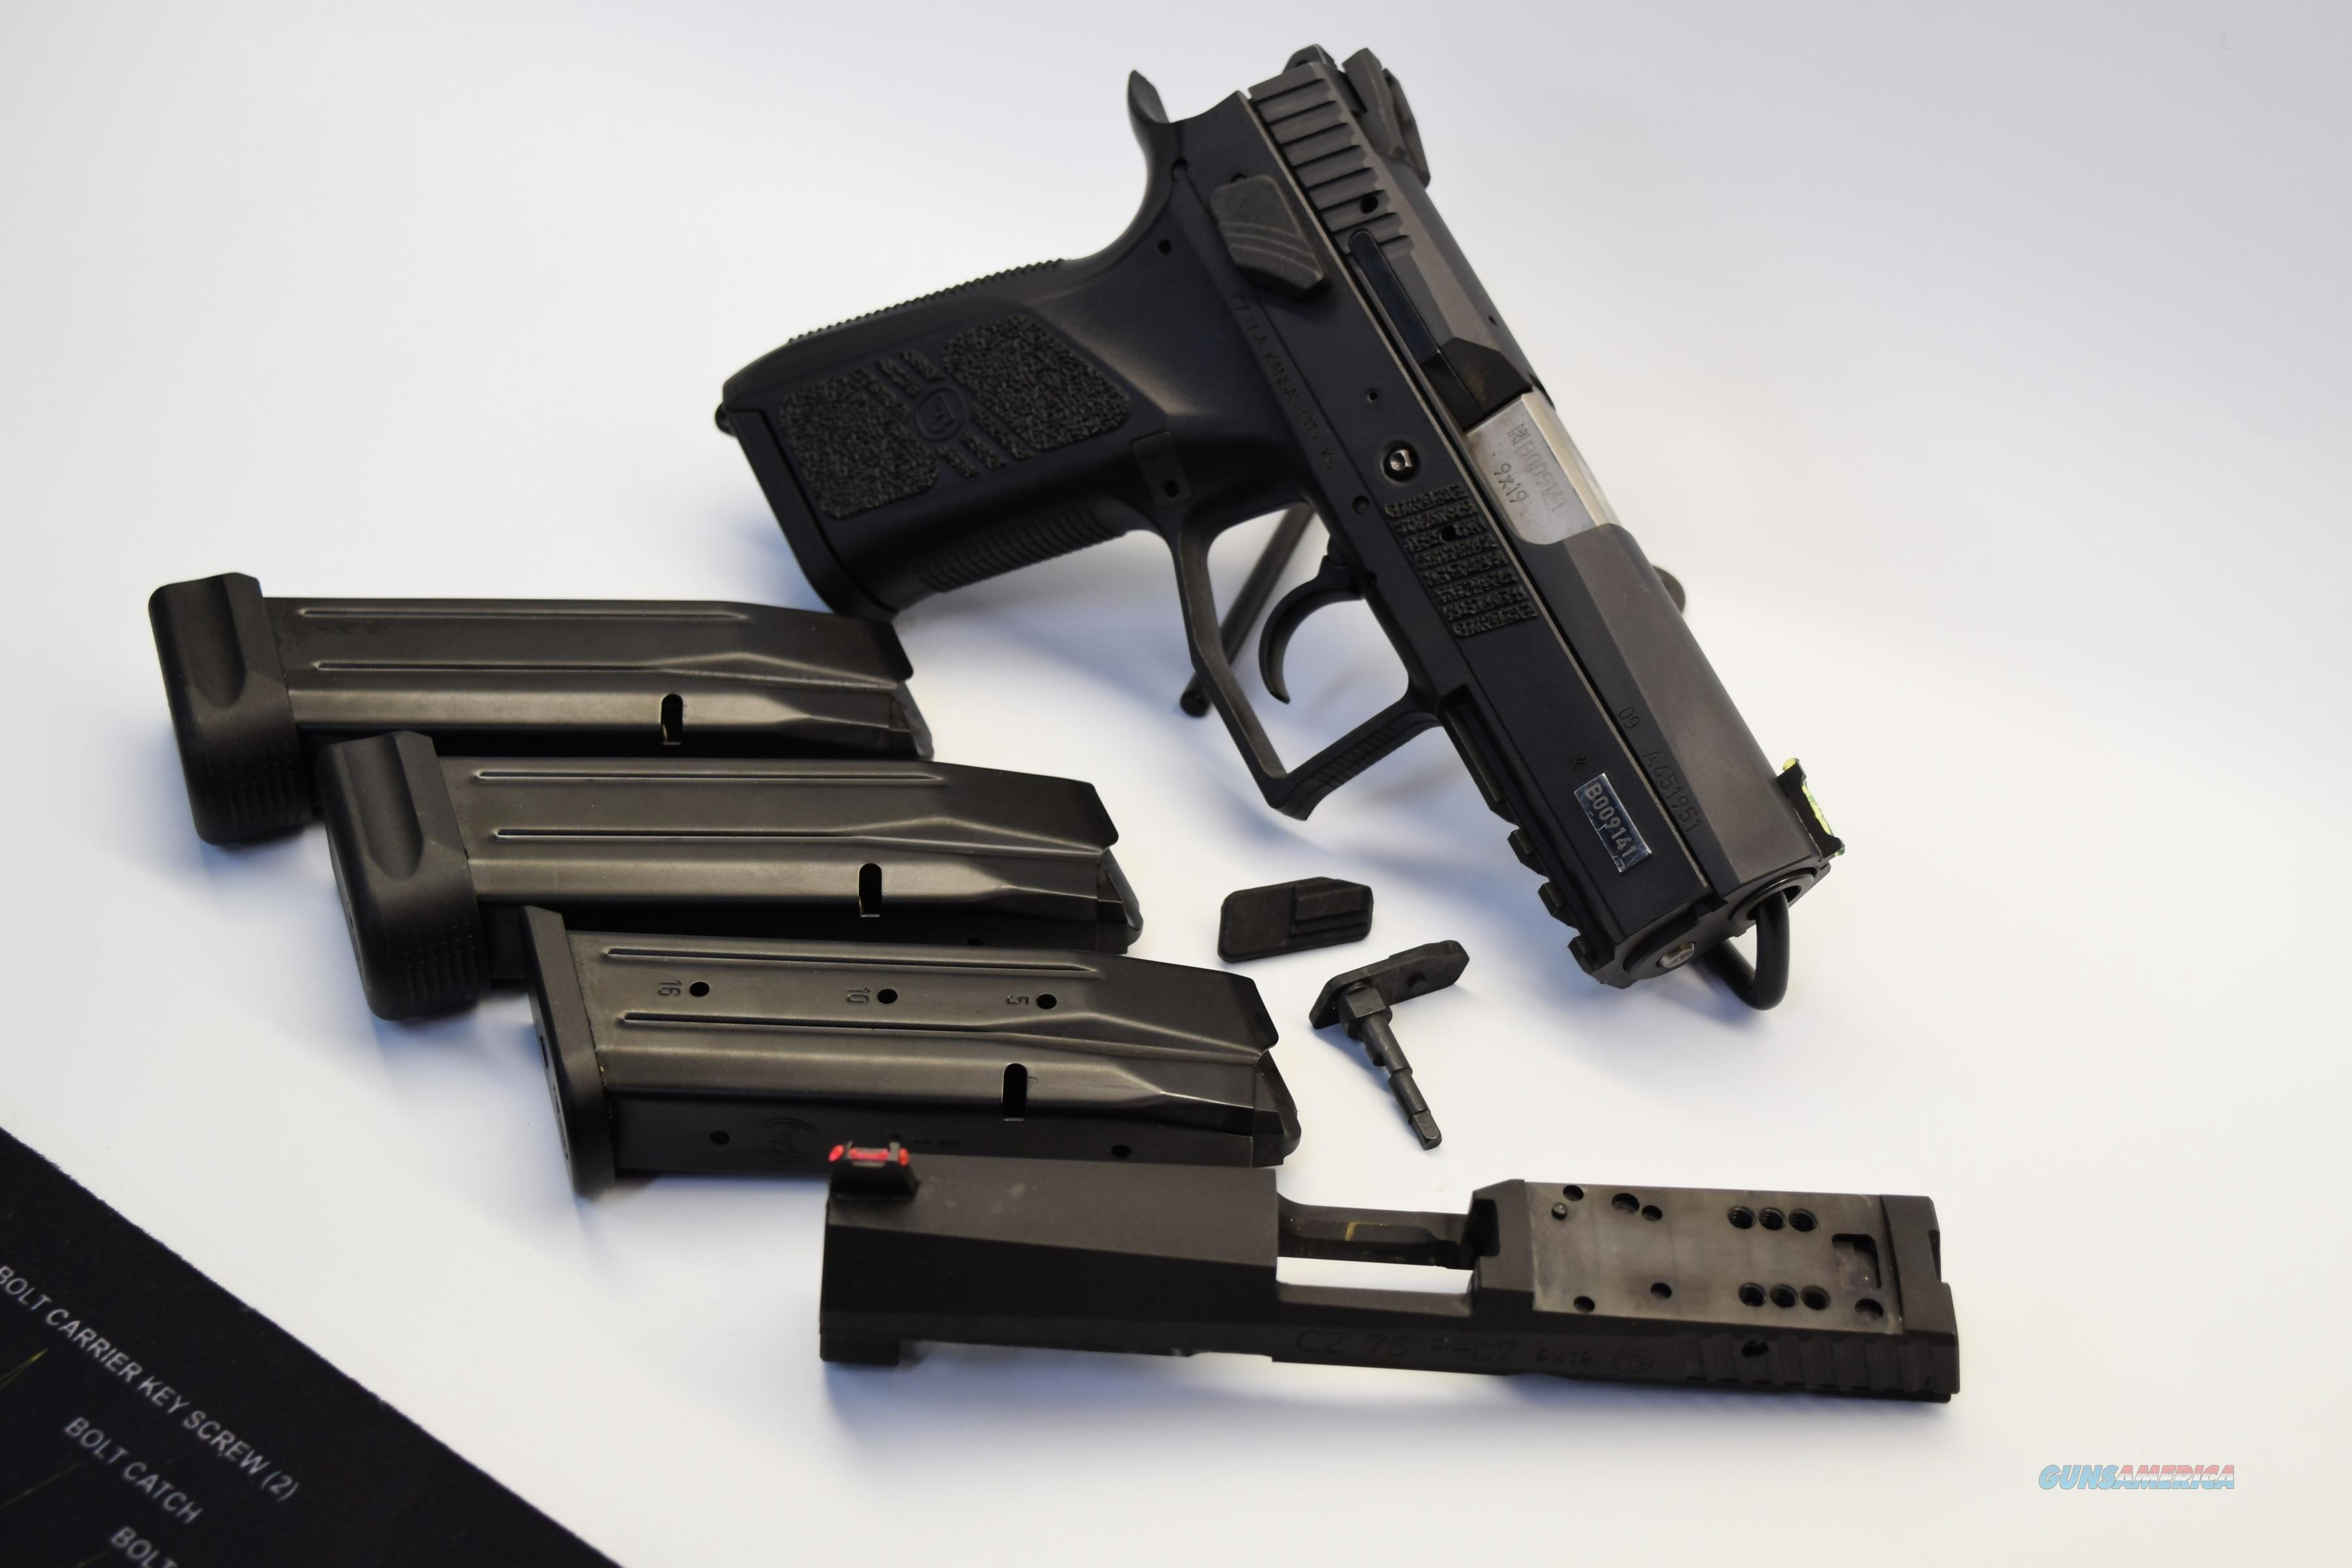 CZ Custom Shop PO7 Duty with optic ready silde and Standard slide with  fiber optic sight, 2 standard mags and 2 plus 2 mags